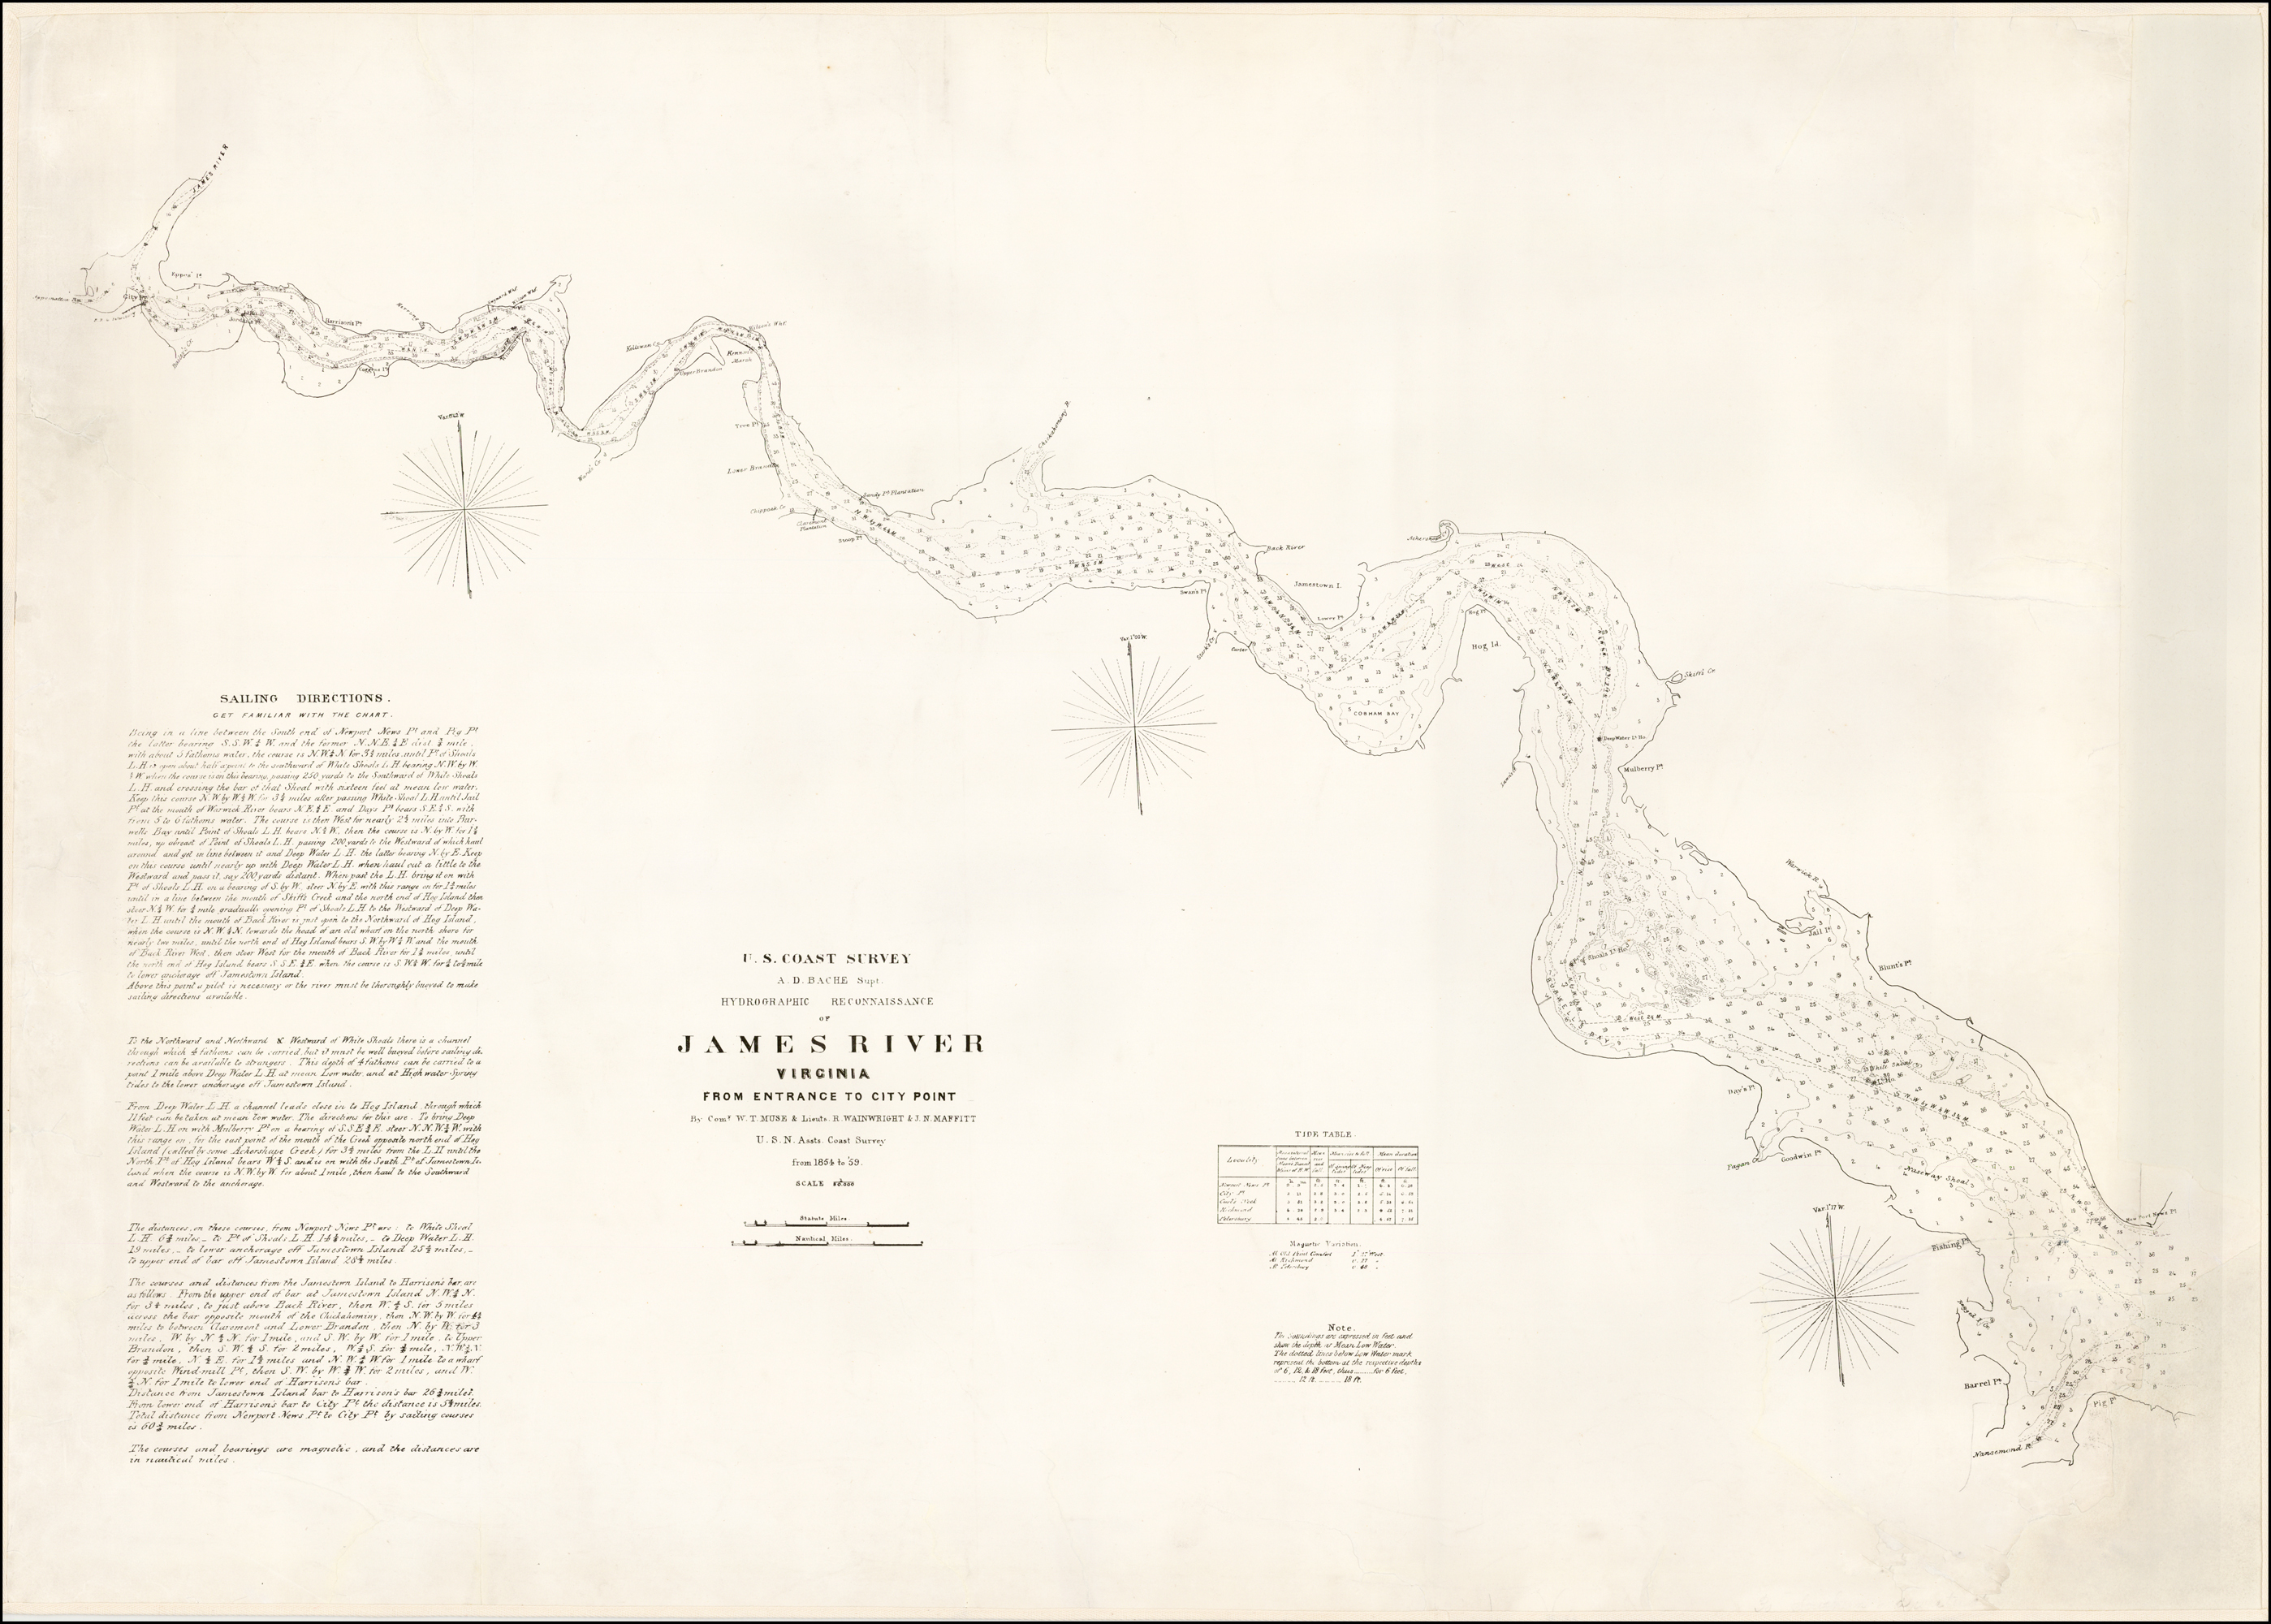 Hydrographic Reconnaissance Of James River Virginia From